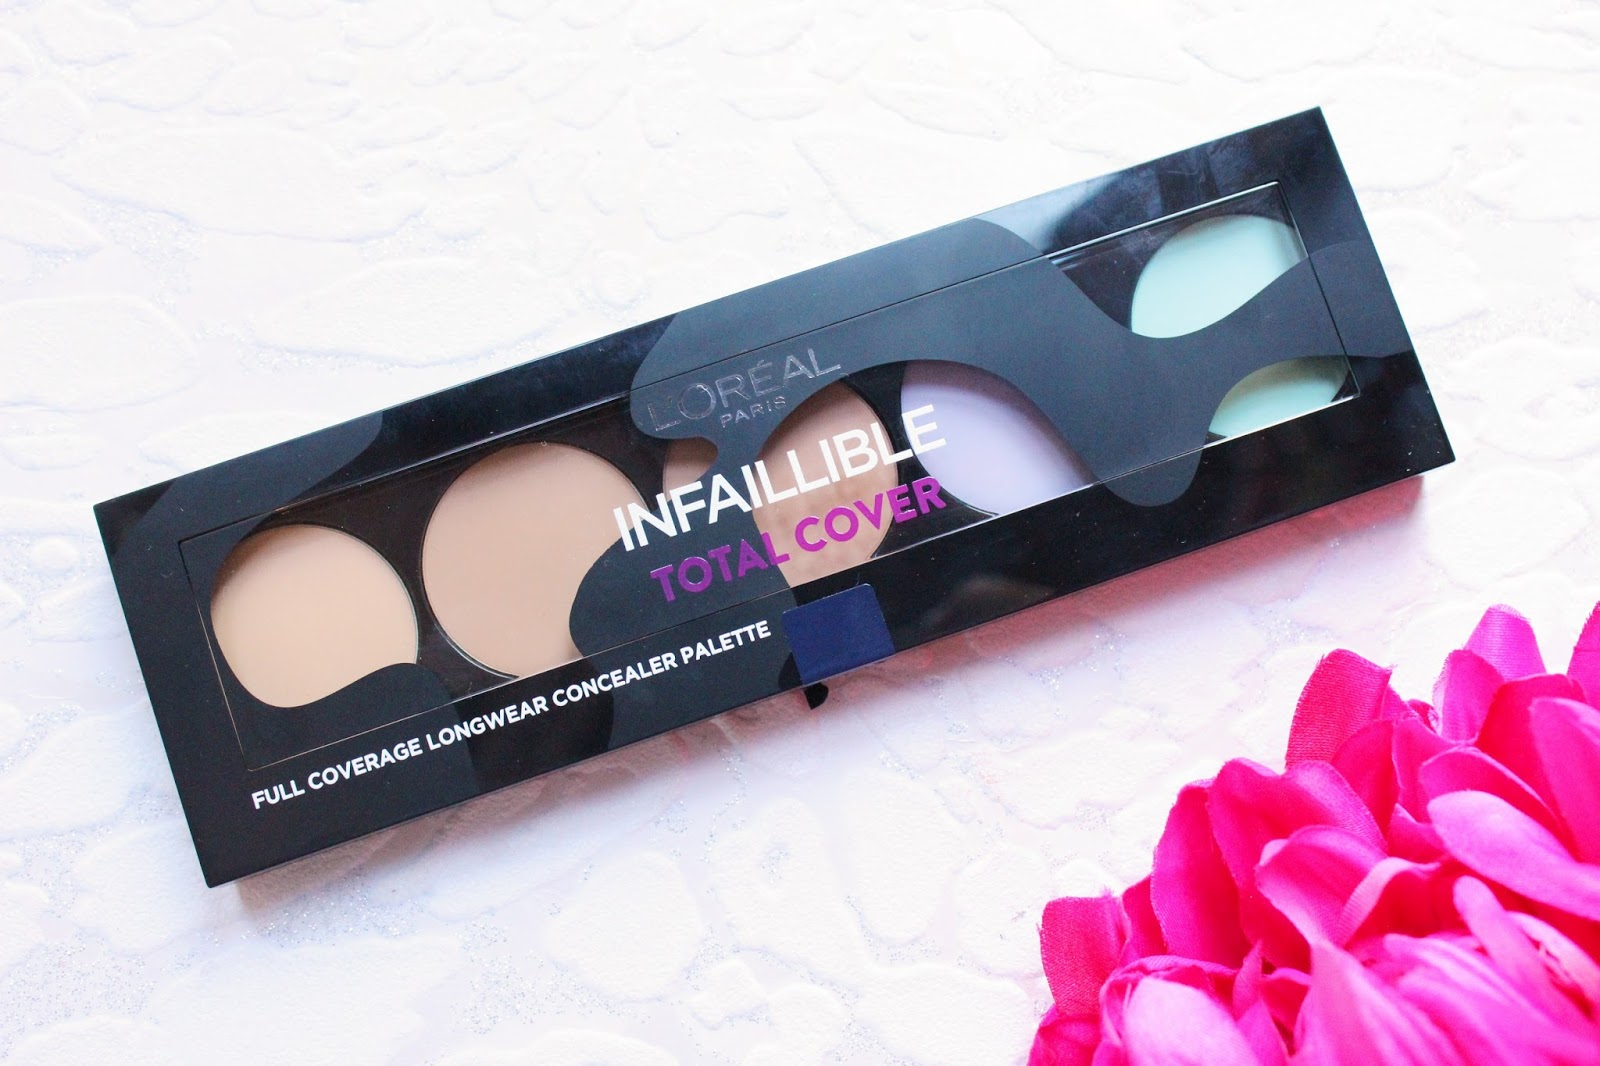 L'Oreal Infallible Total Cover Concealer Palette